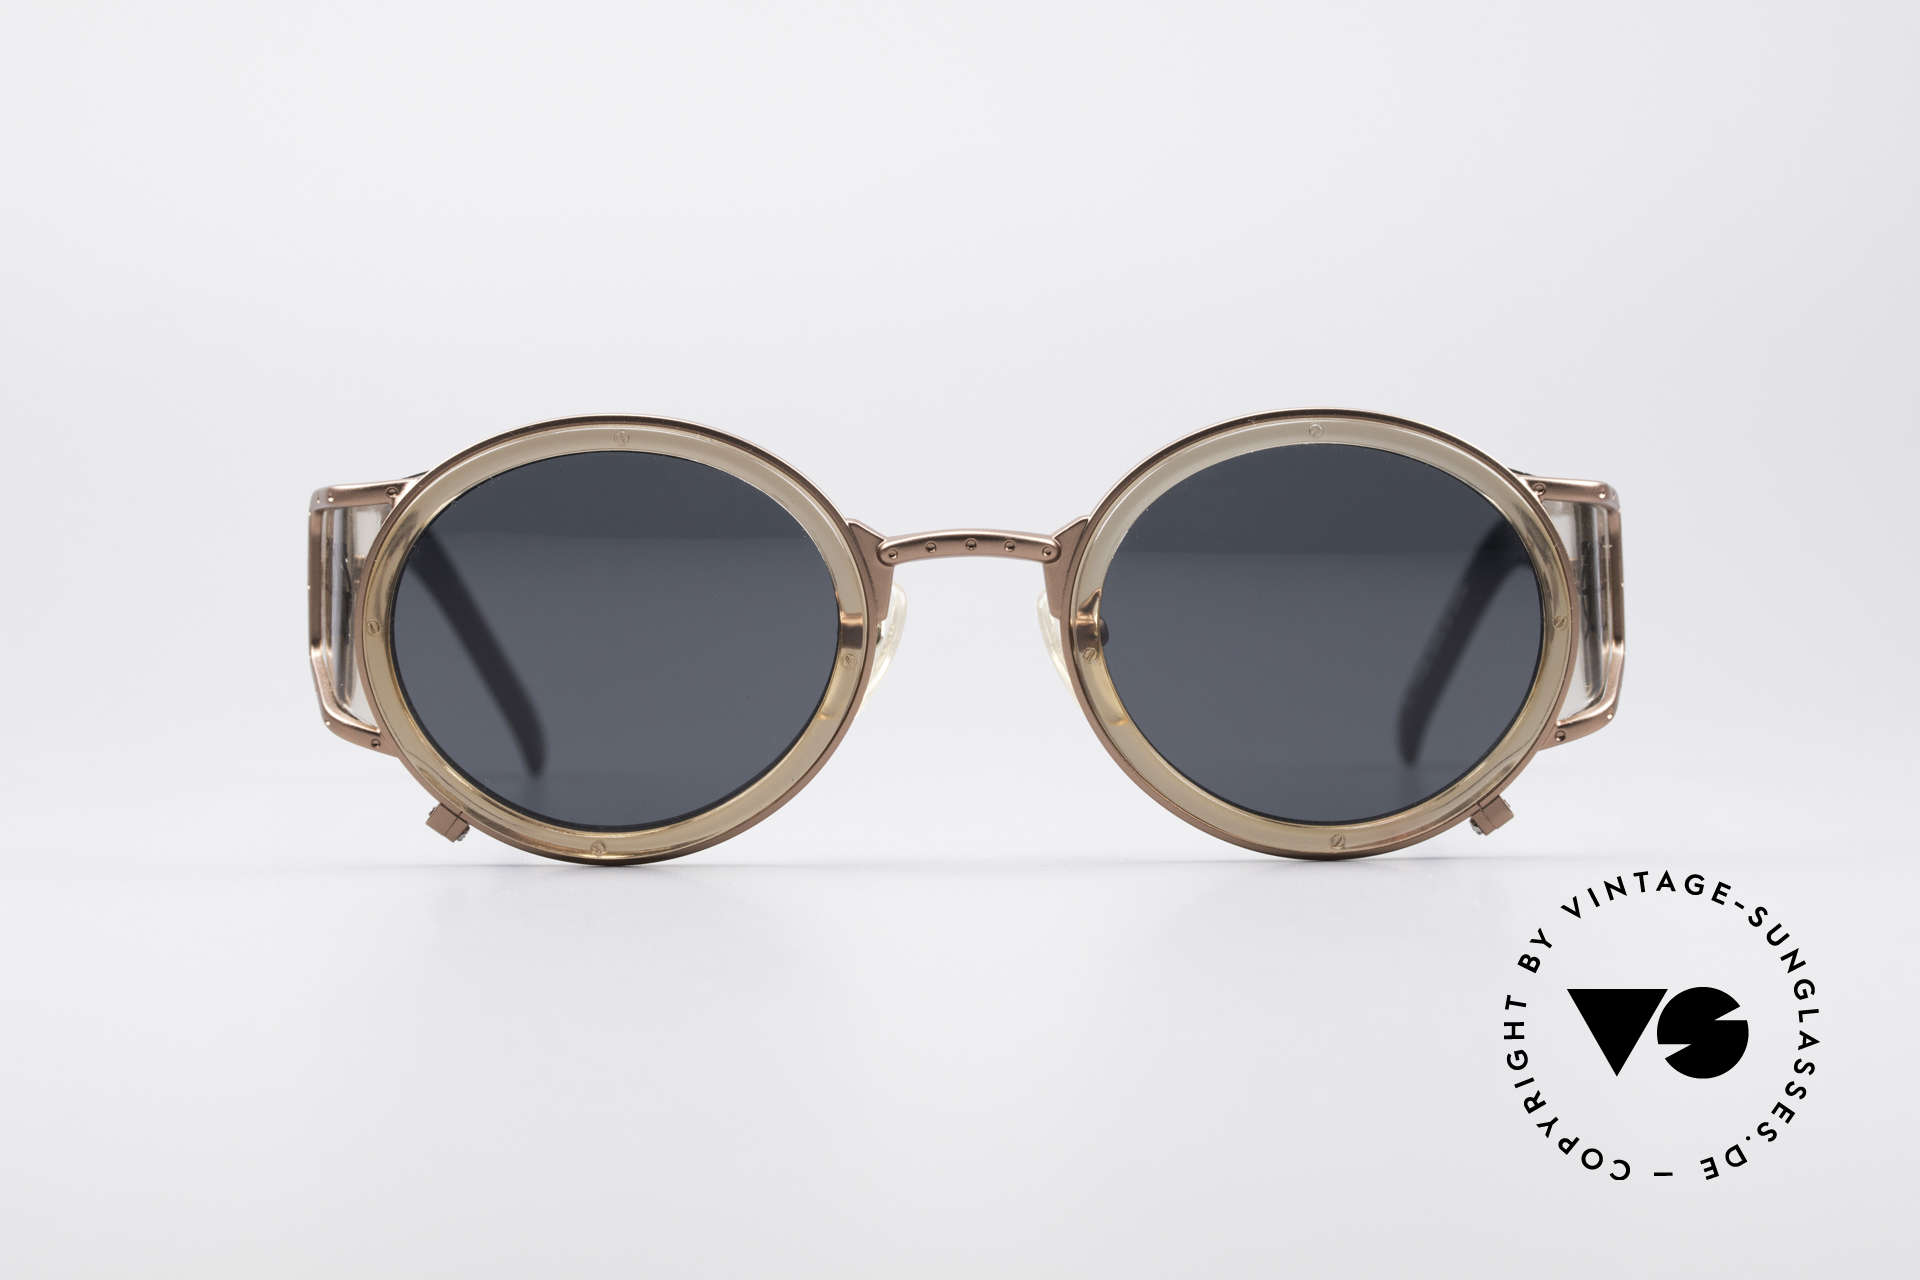 Jean Paul Gaultier 58-6201 Vintage Celebrity Glasses, metal & plastic combination in copper / translucent, Made for Men and Women